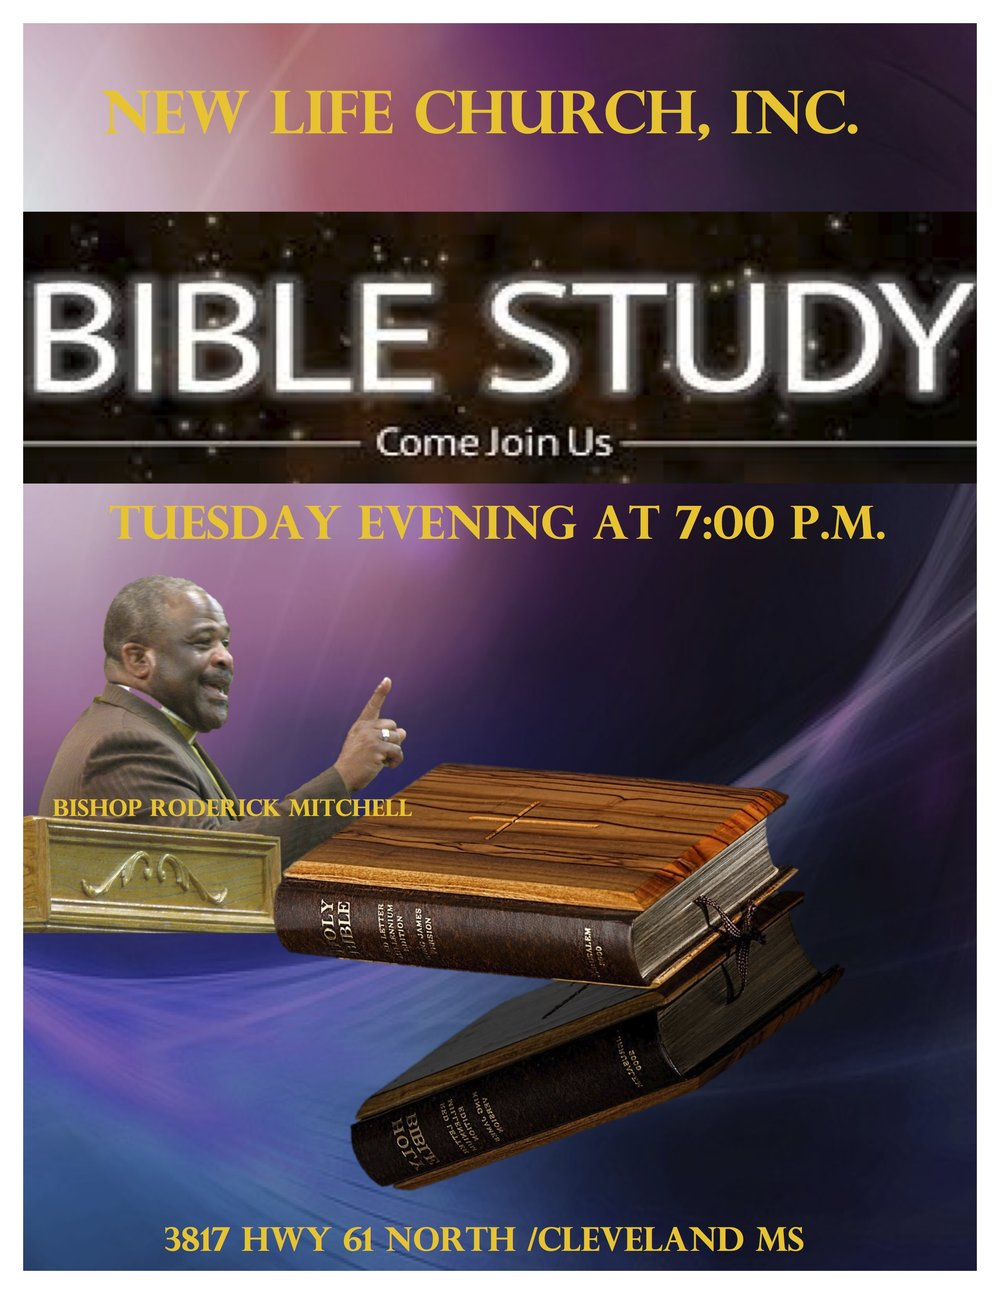 Bible Study Flyer 3 copy.jpg